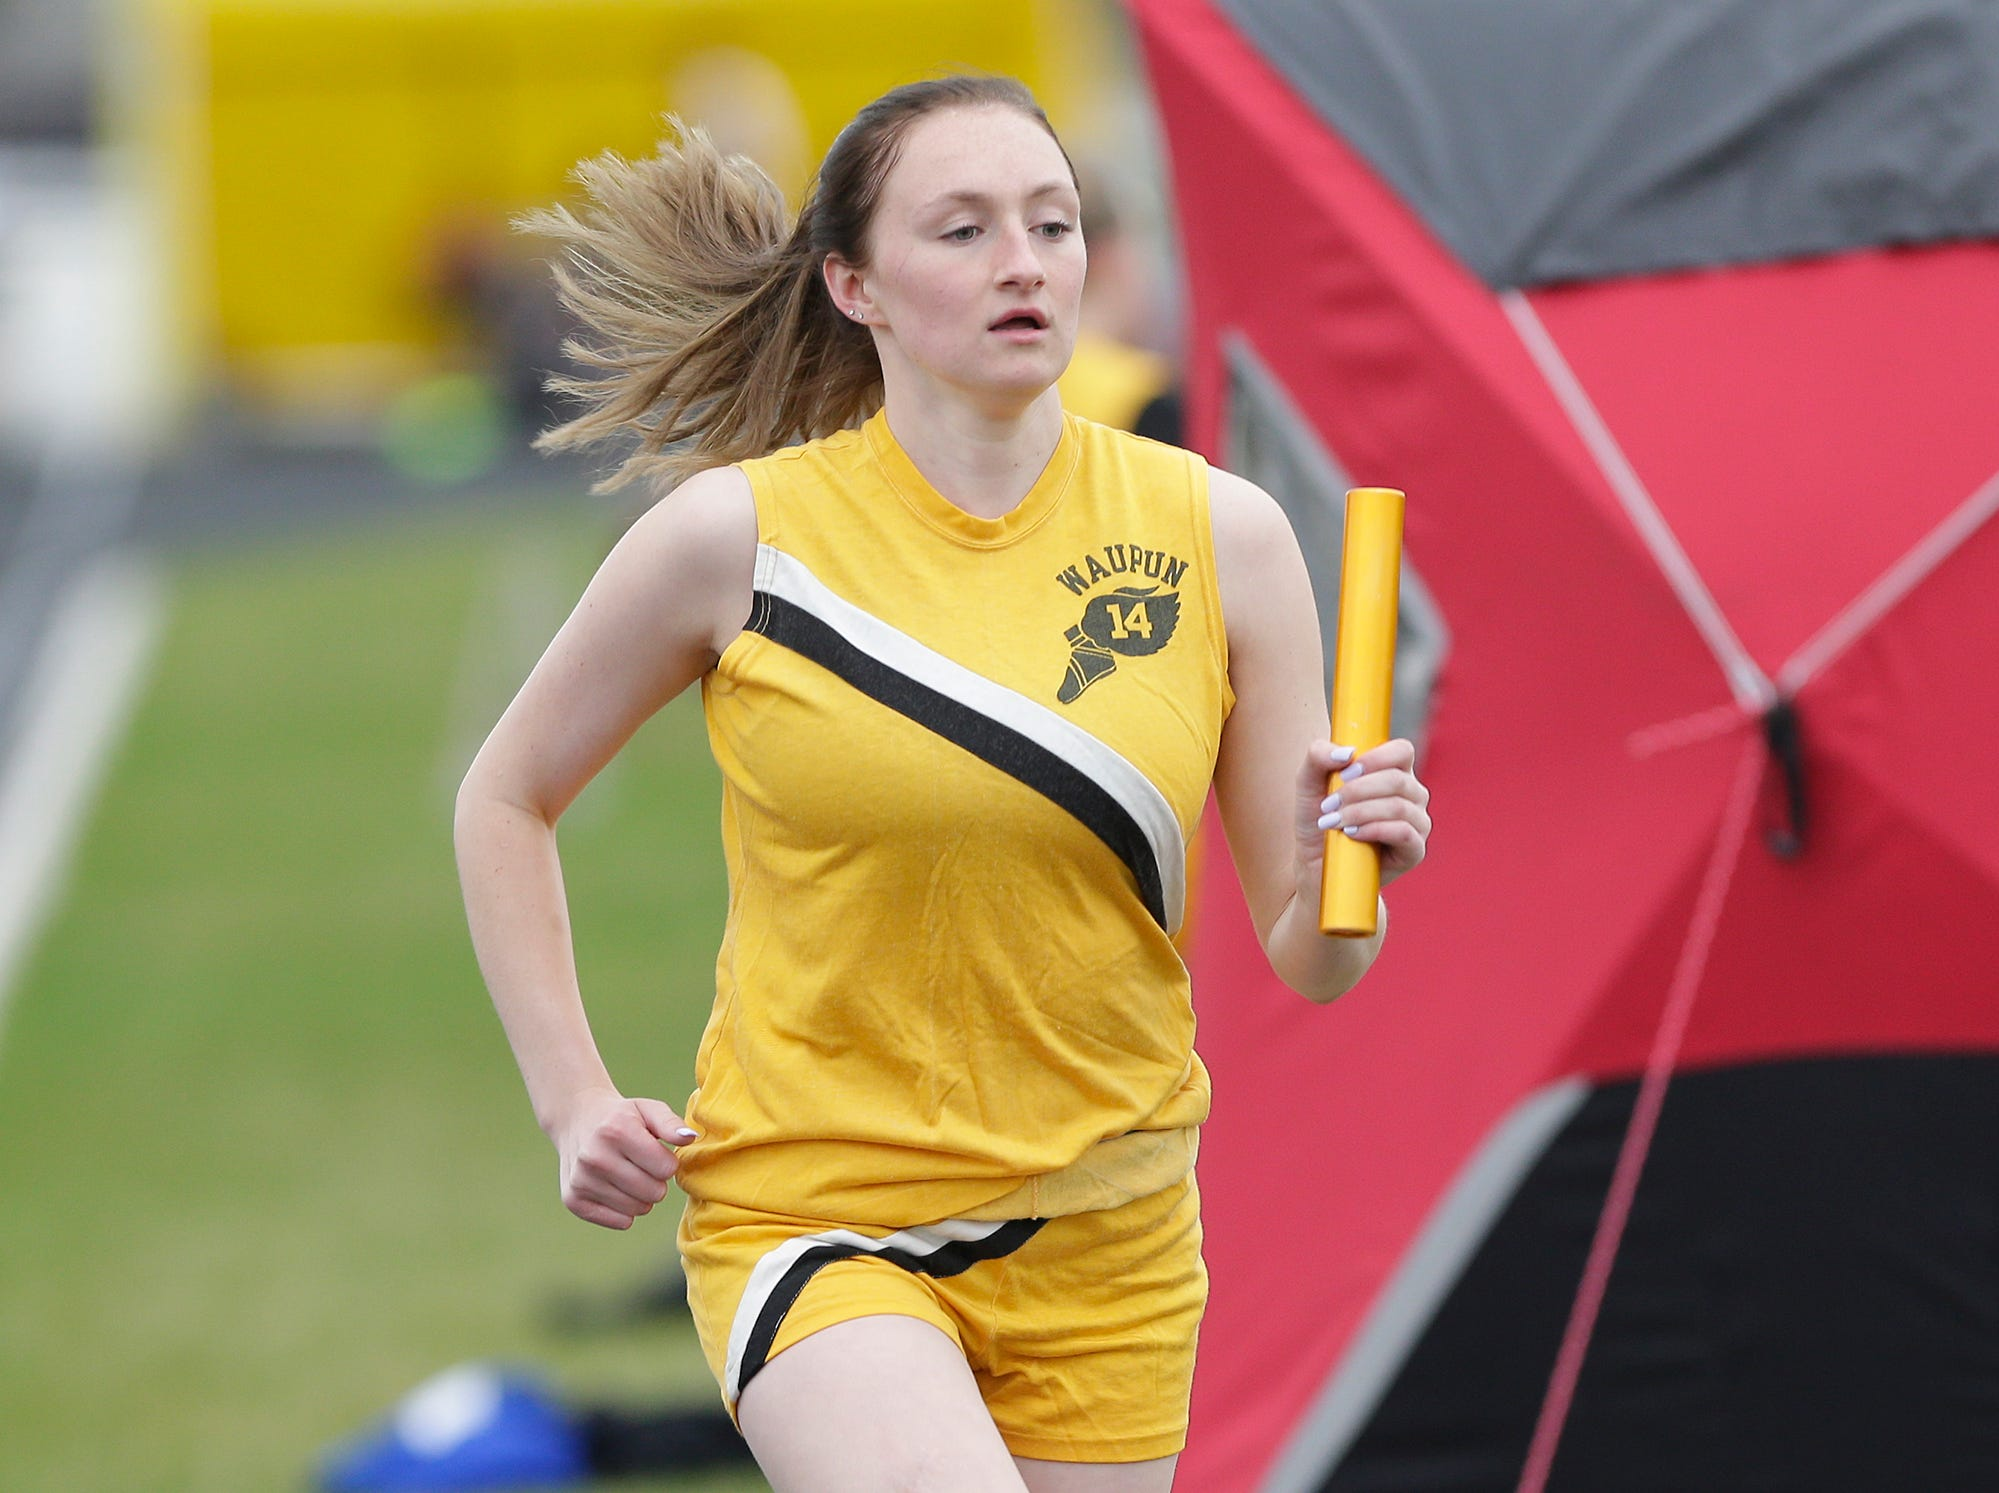 Sara Miller of Waupun High School competes in the 4x800 meter relay Friday, May 3, 2019 at the Waupun High School Invitational track and field meet. Doug Raflik/USA TODAY NETWORK-Wisconsin